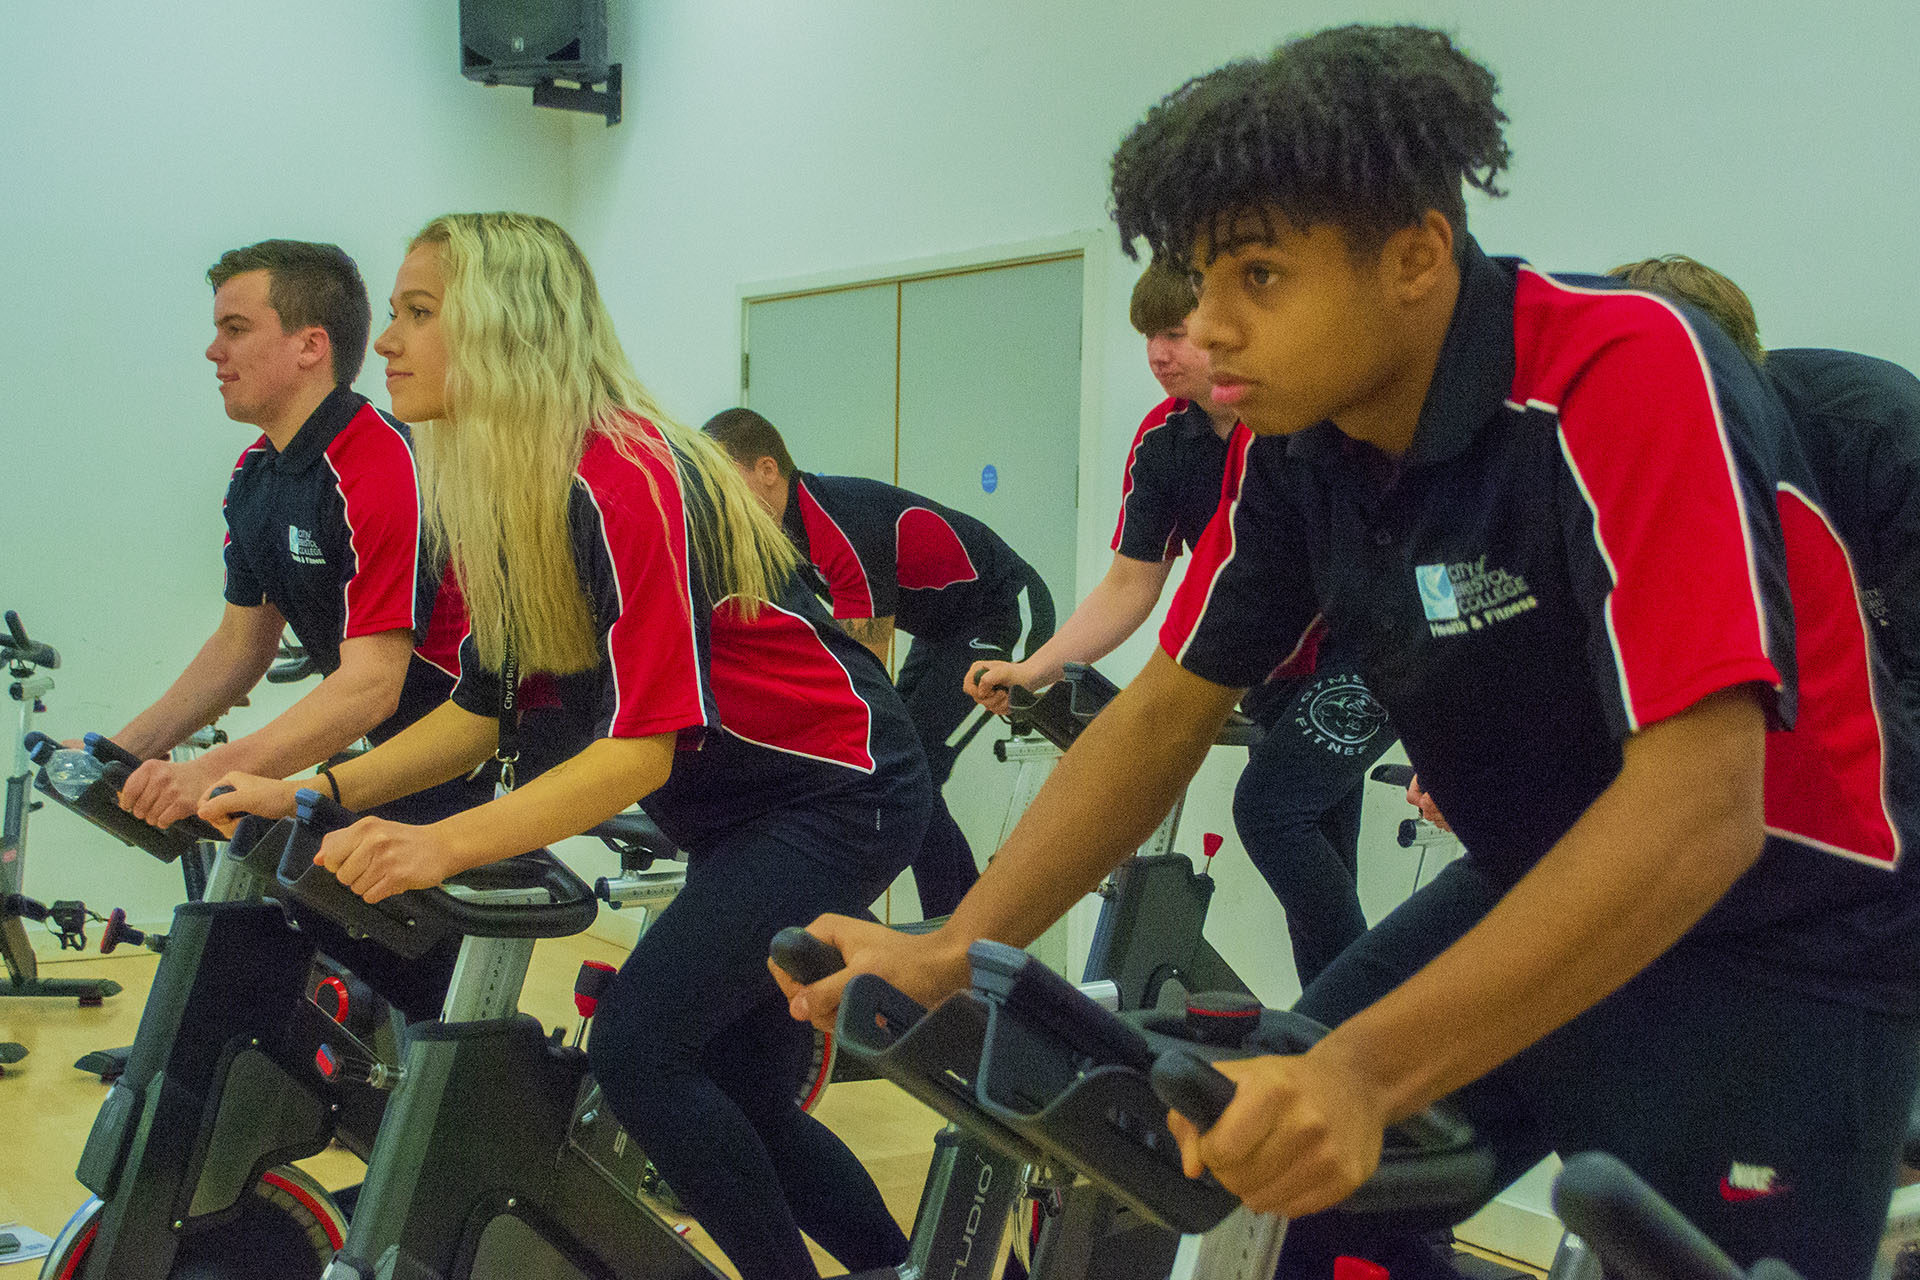 Sports Fitness. Students using training bikes in gym